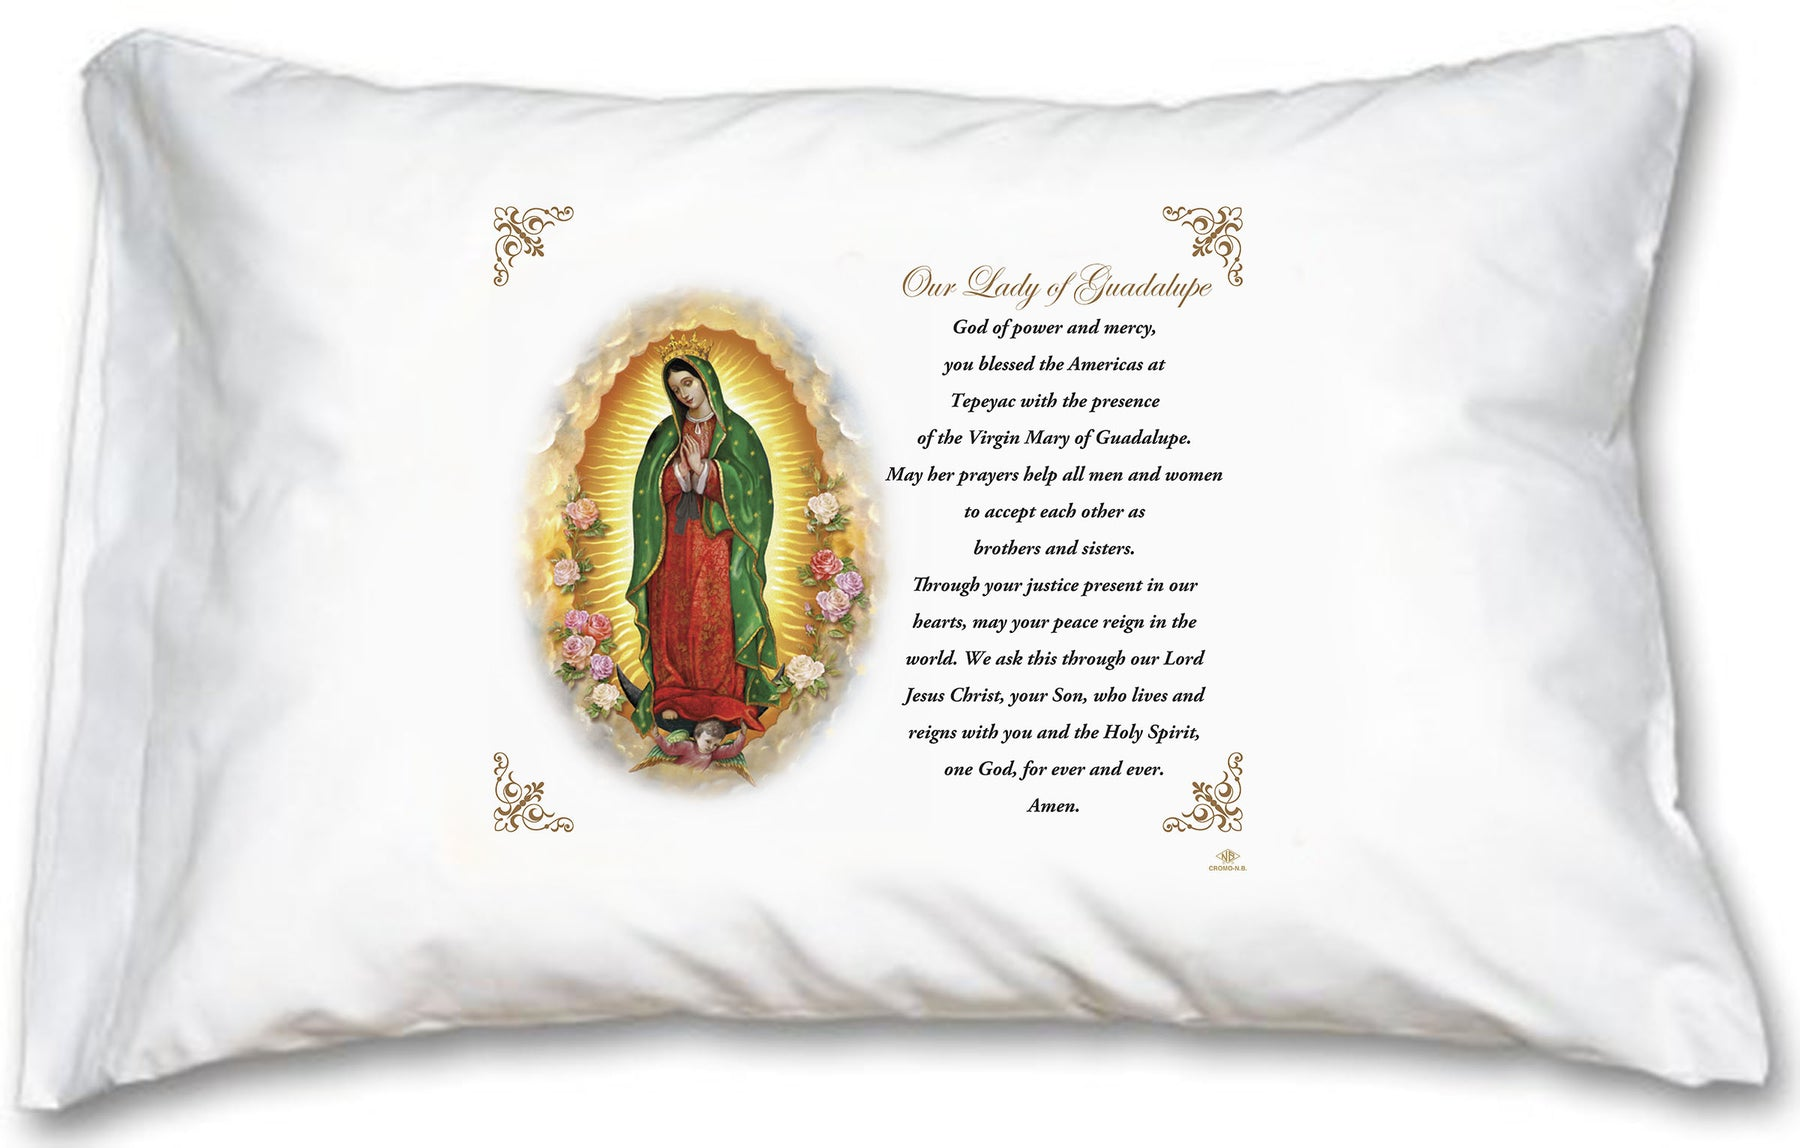 Our Lady of Guadalupe Pillow Case - English Prayer